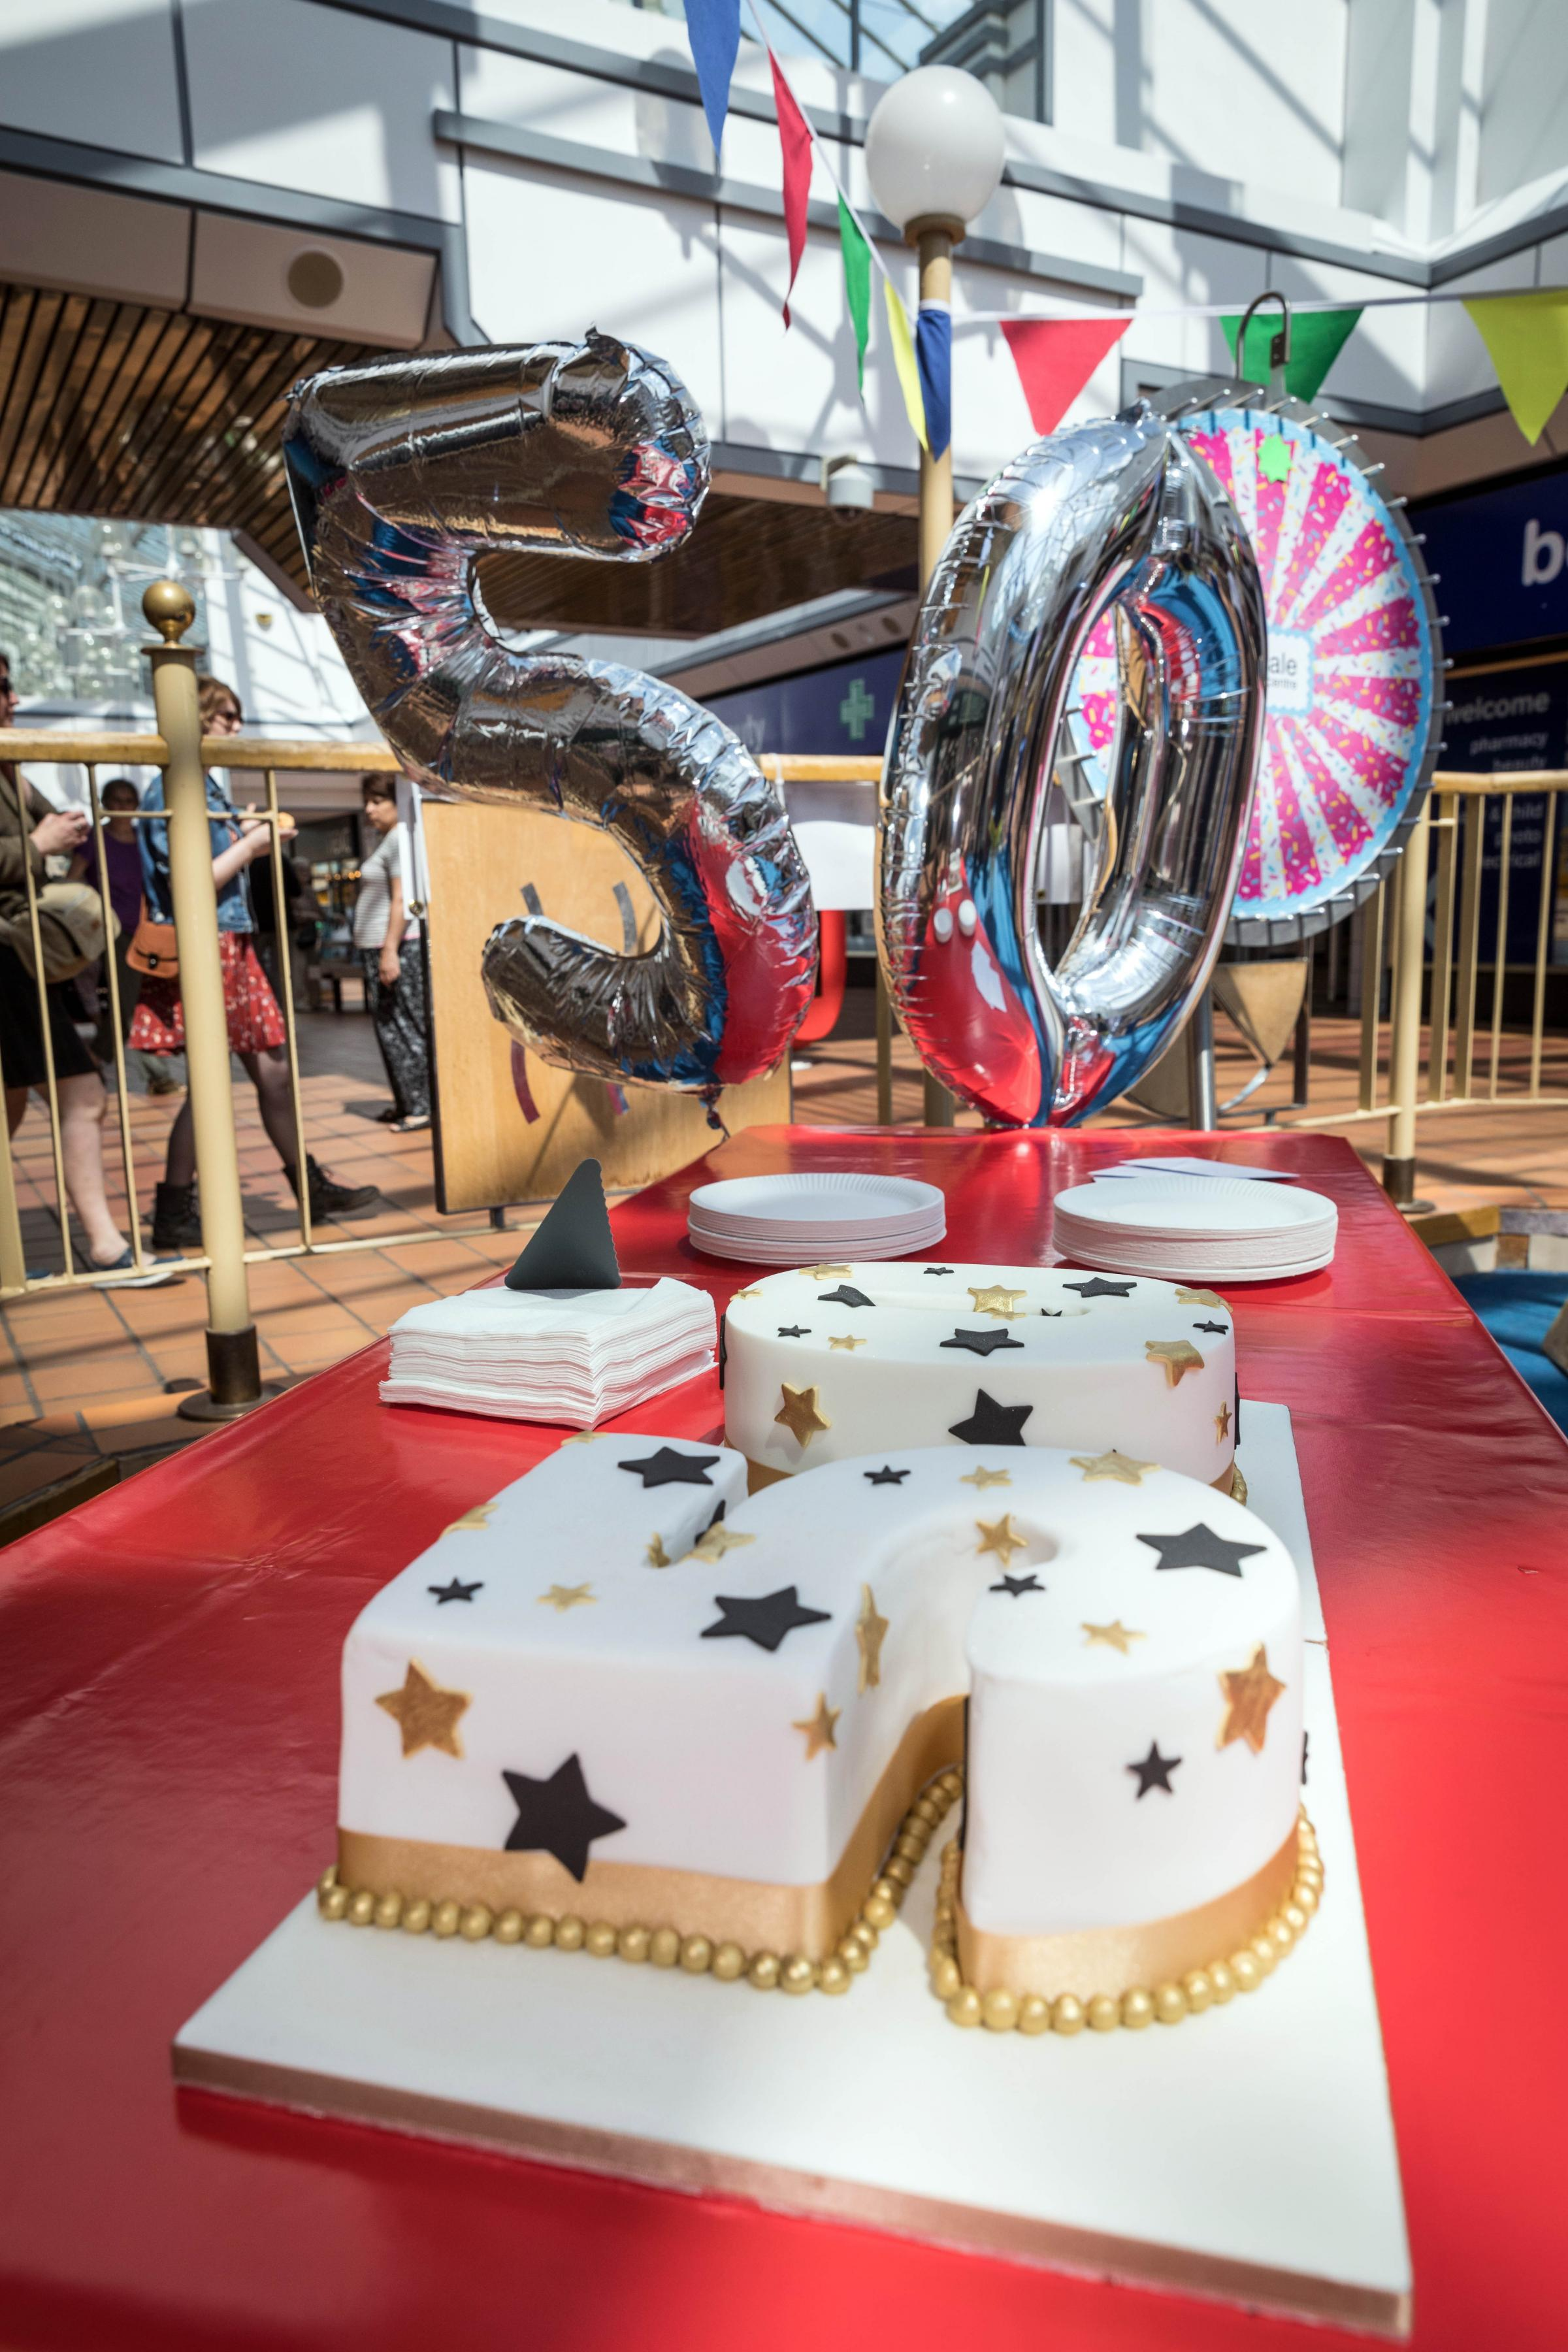 Airedale Shopping Centre celebrates its 50th birthday with a specially made cake